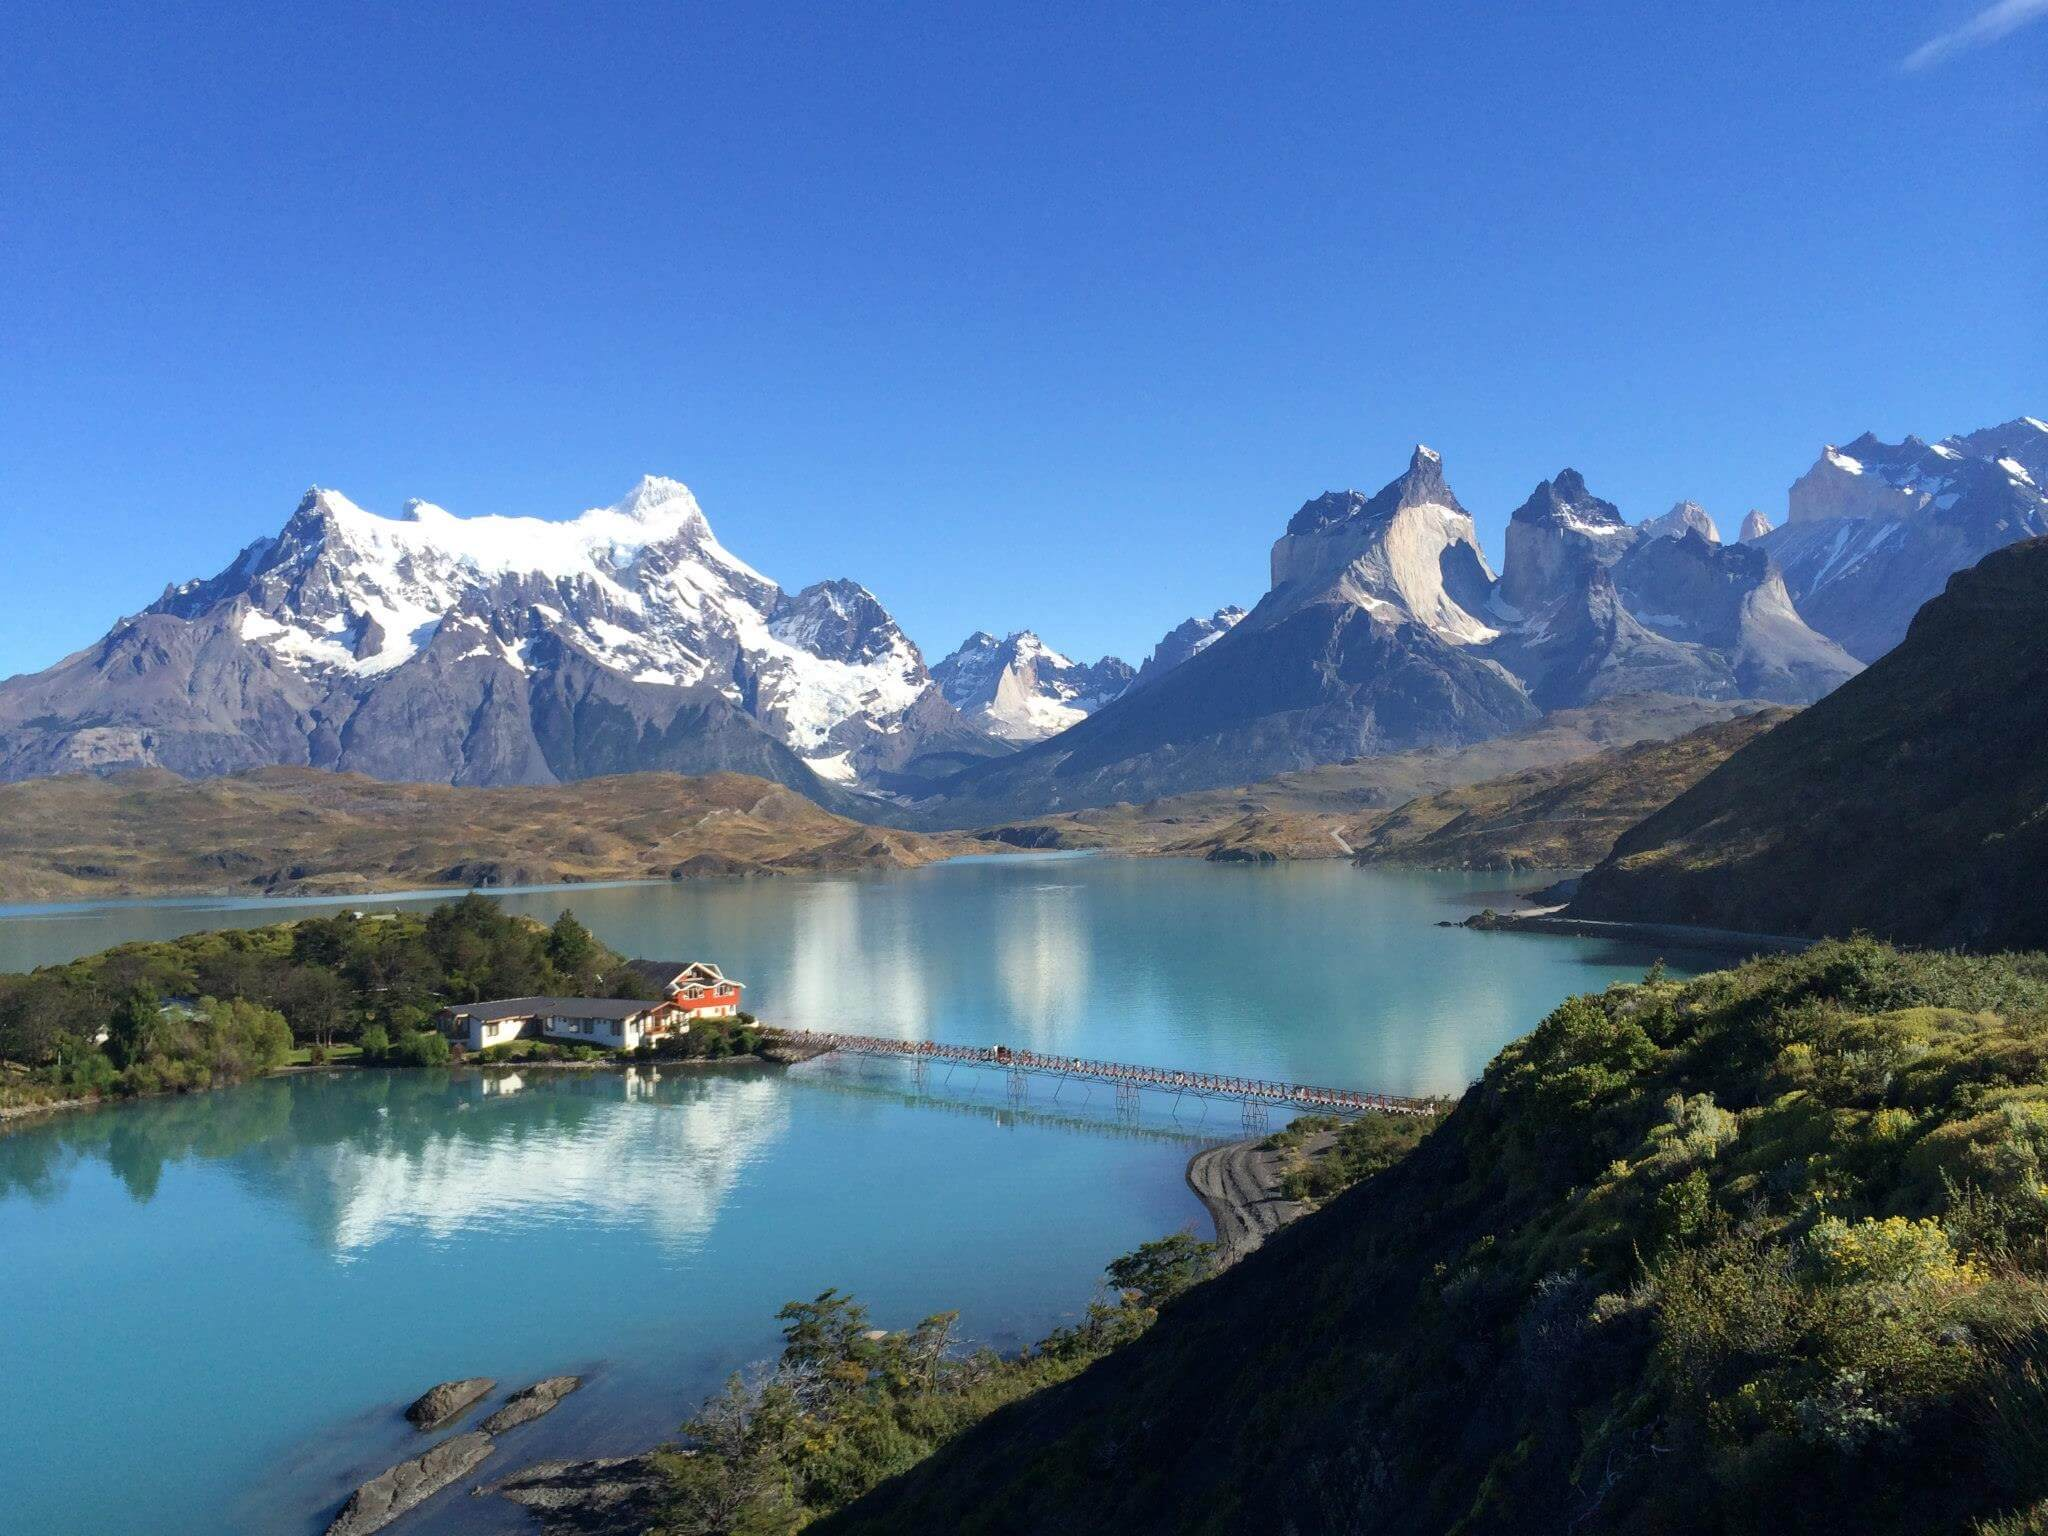 Torres del Paine – Patagonia At it's Wildest & Most Rugged